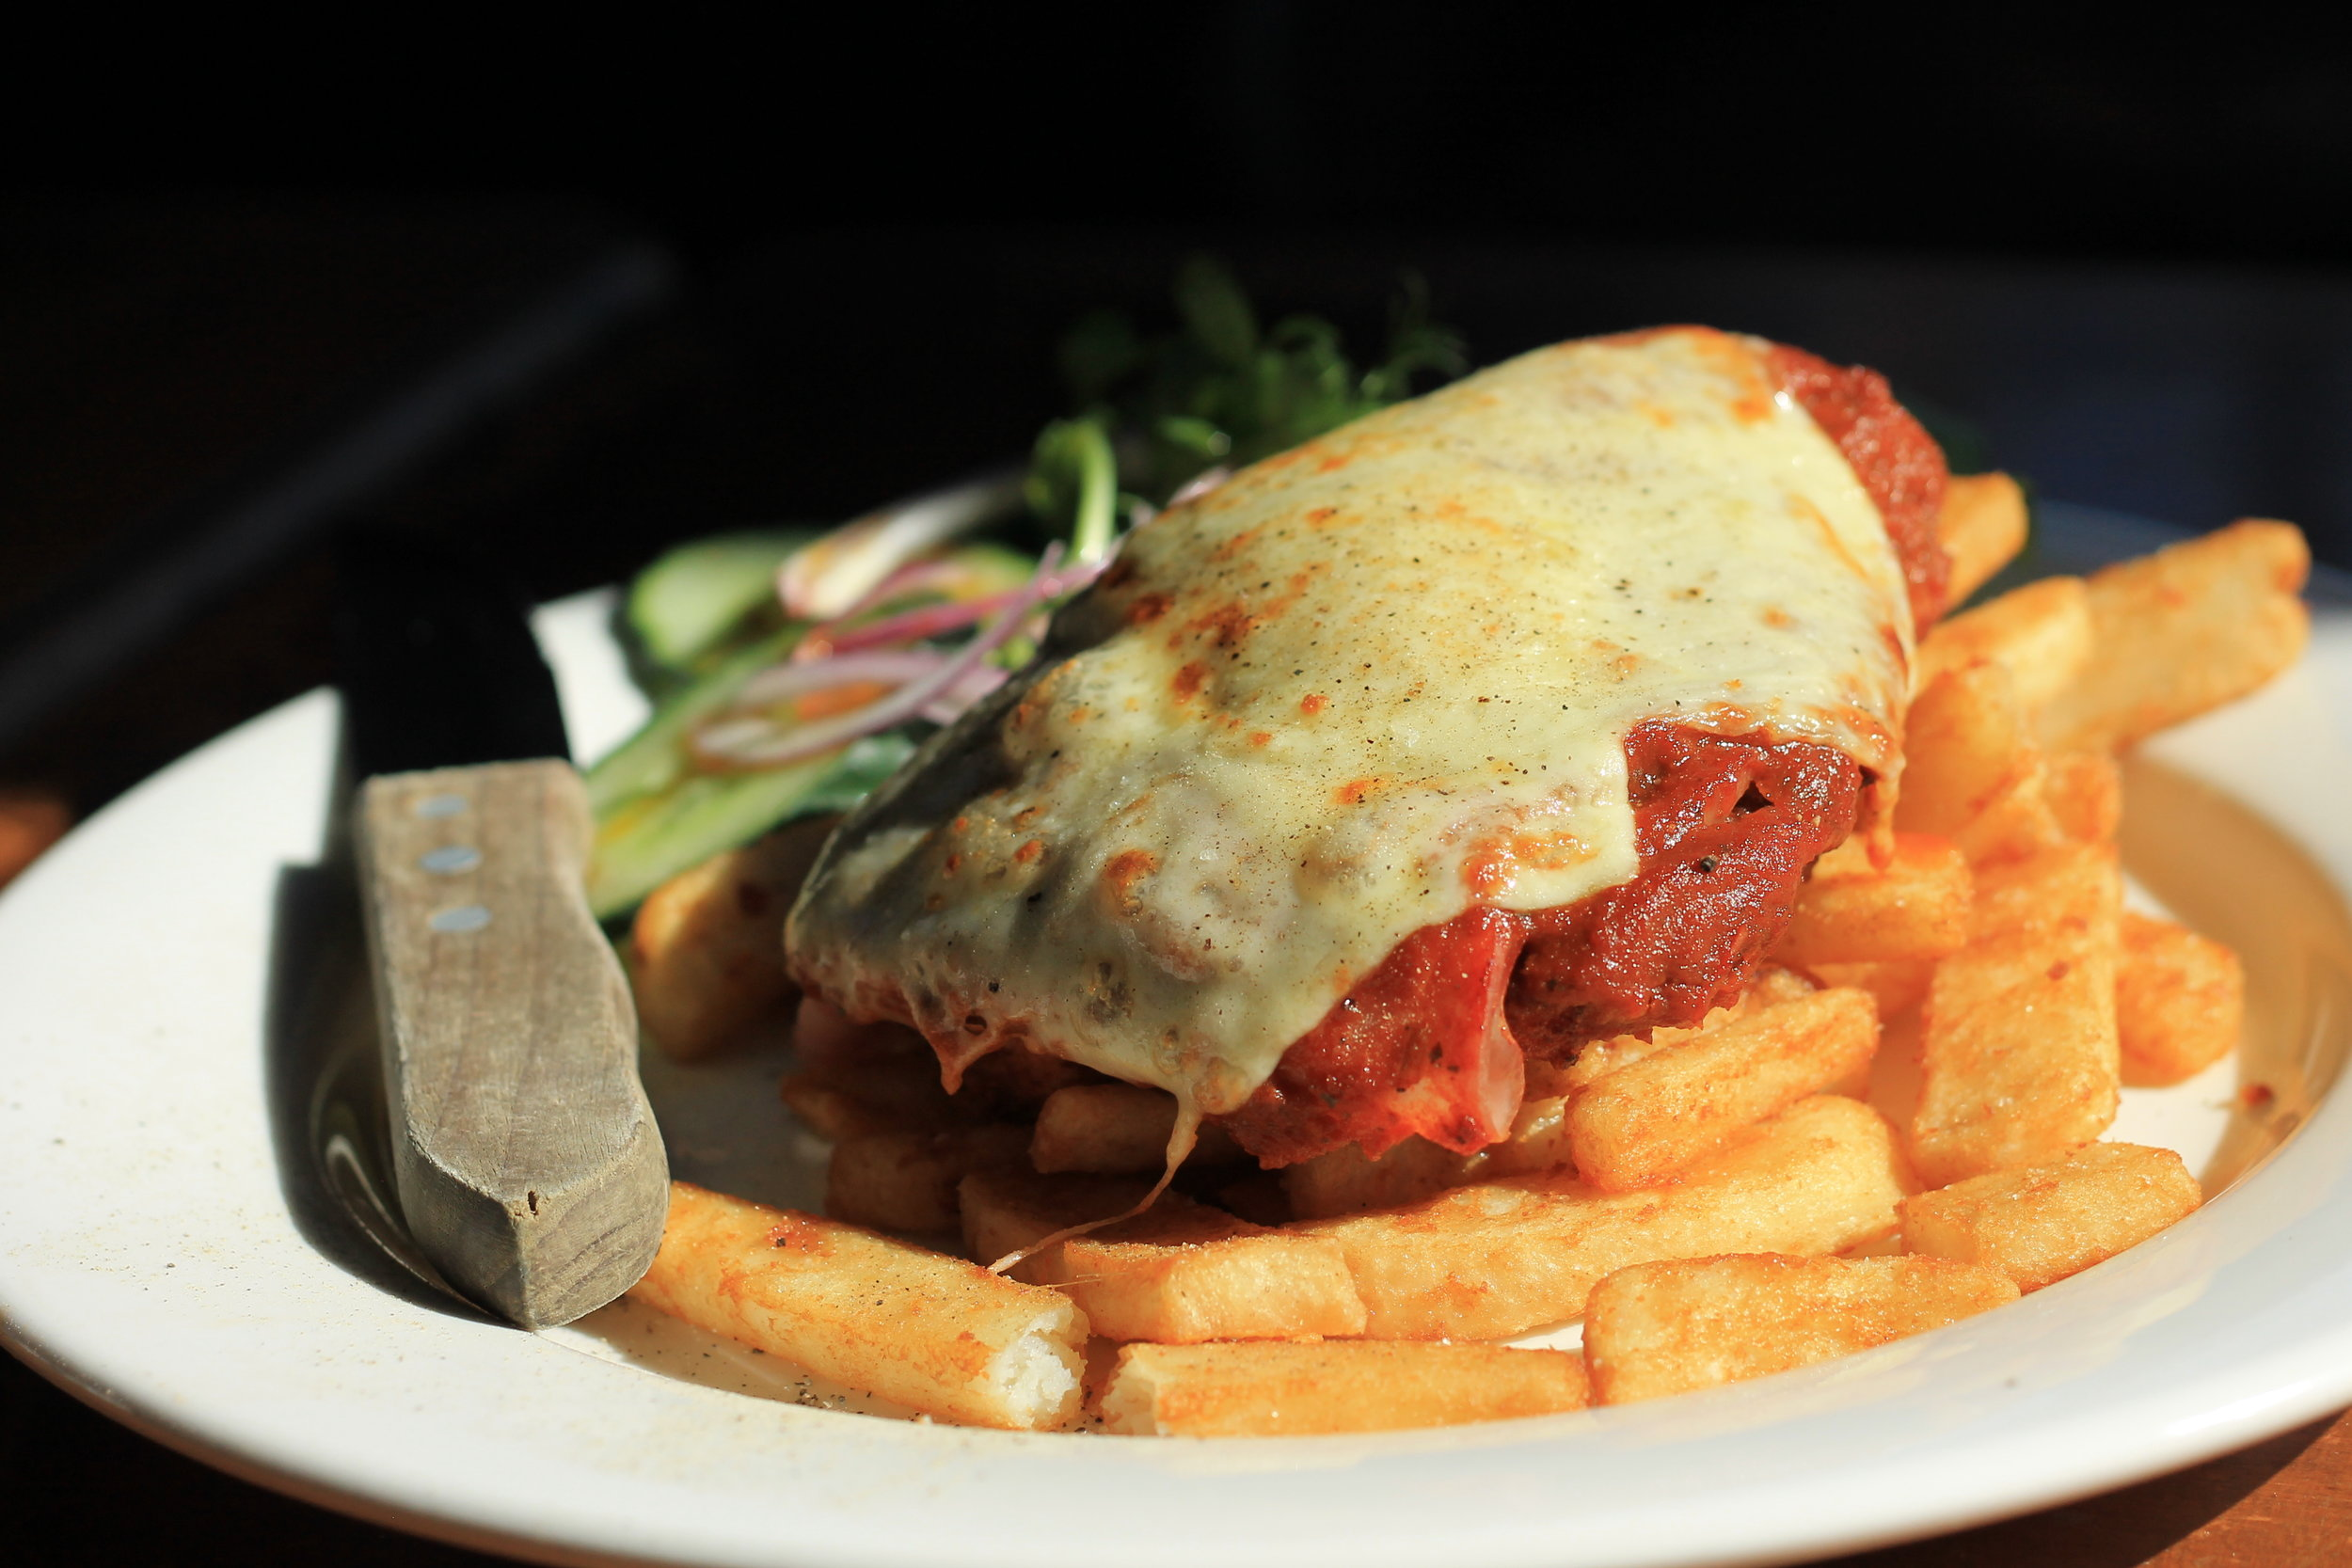 Thursday Parmi - $15 Eggplant or Chicken Parmi's from 5:30pm